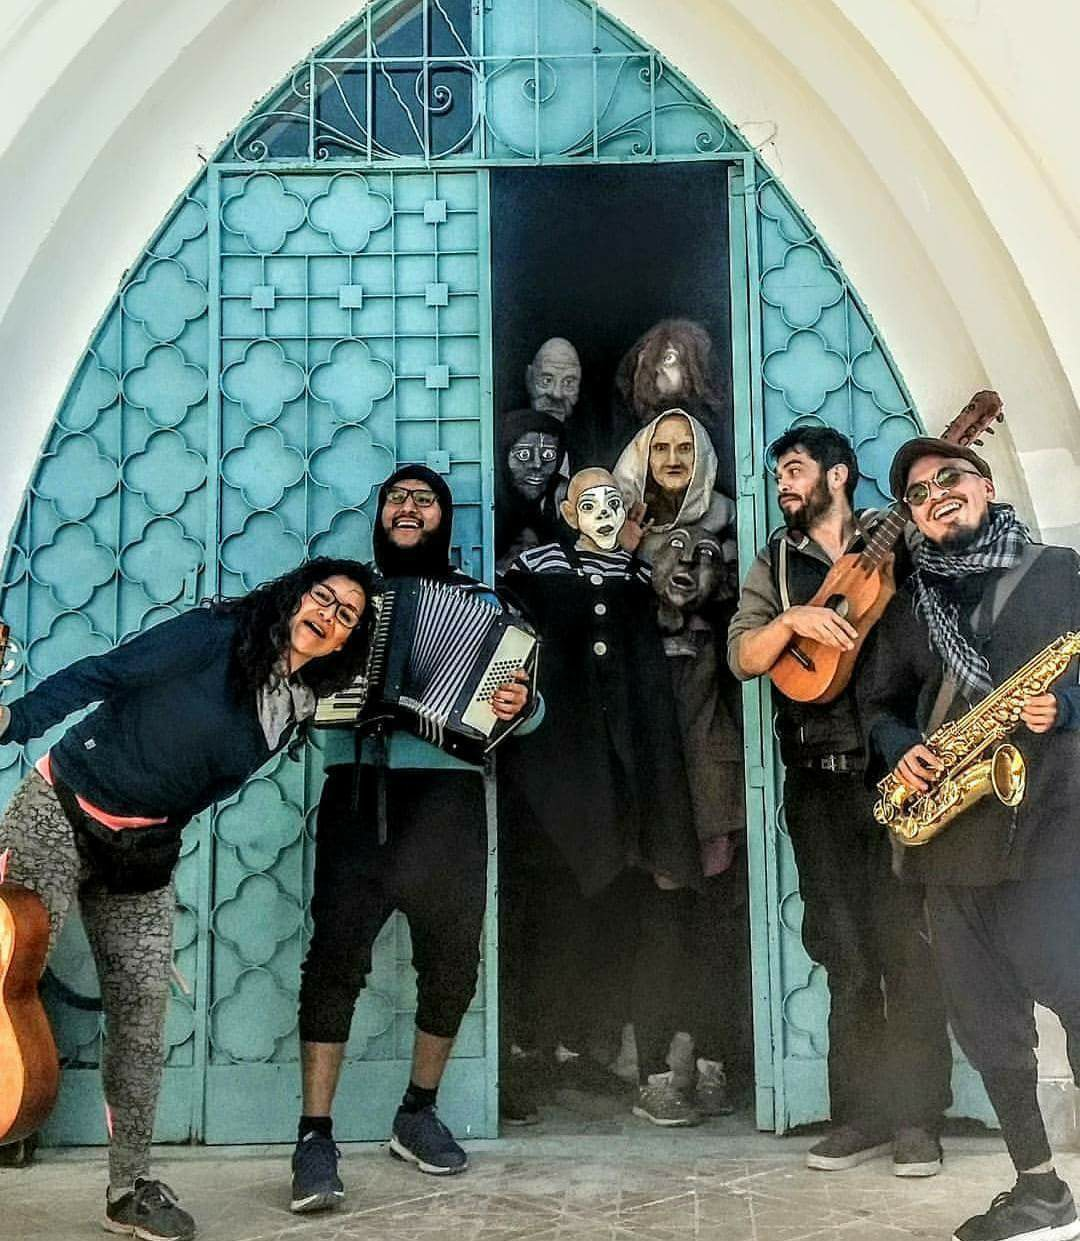 Members of La Quinta Teatro holding musical instruments stand in front of an arched doorway with people in masks standing in the doorway